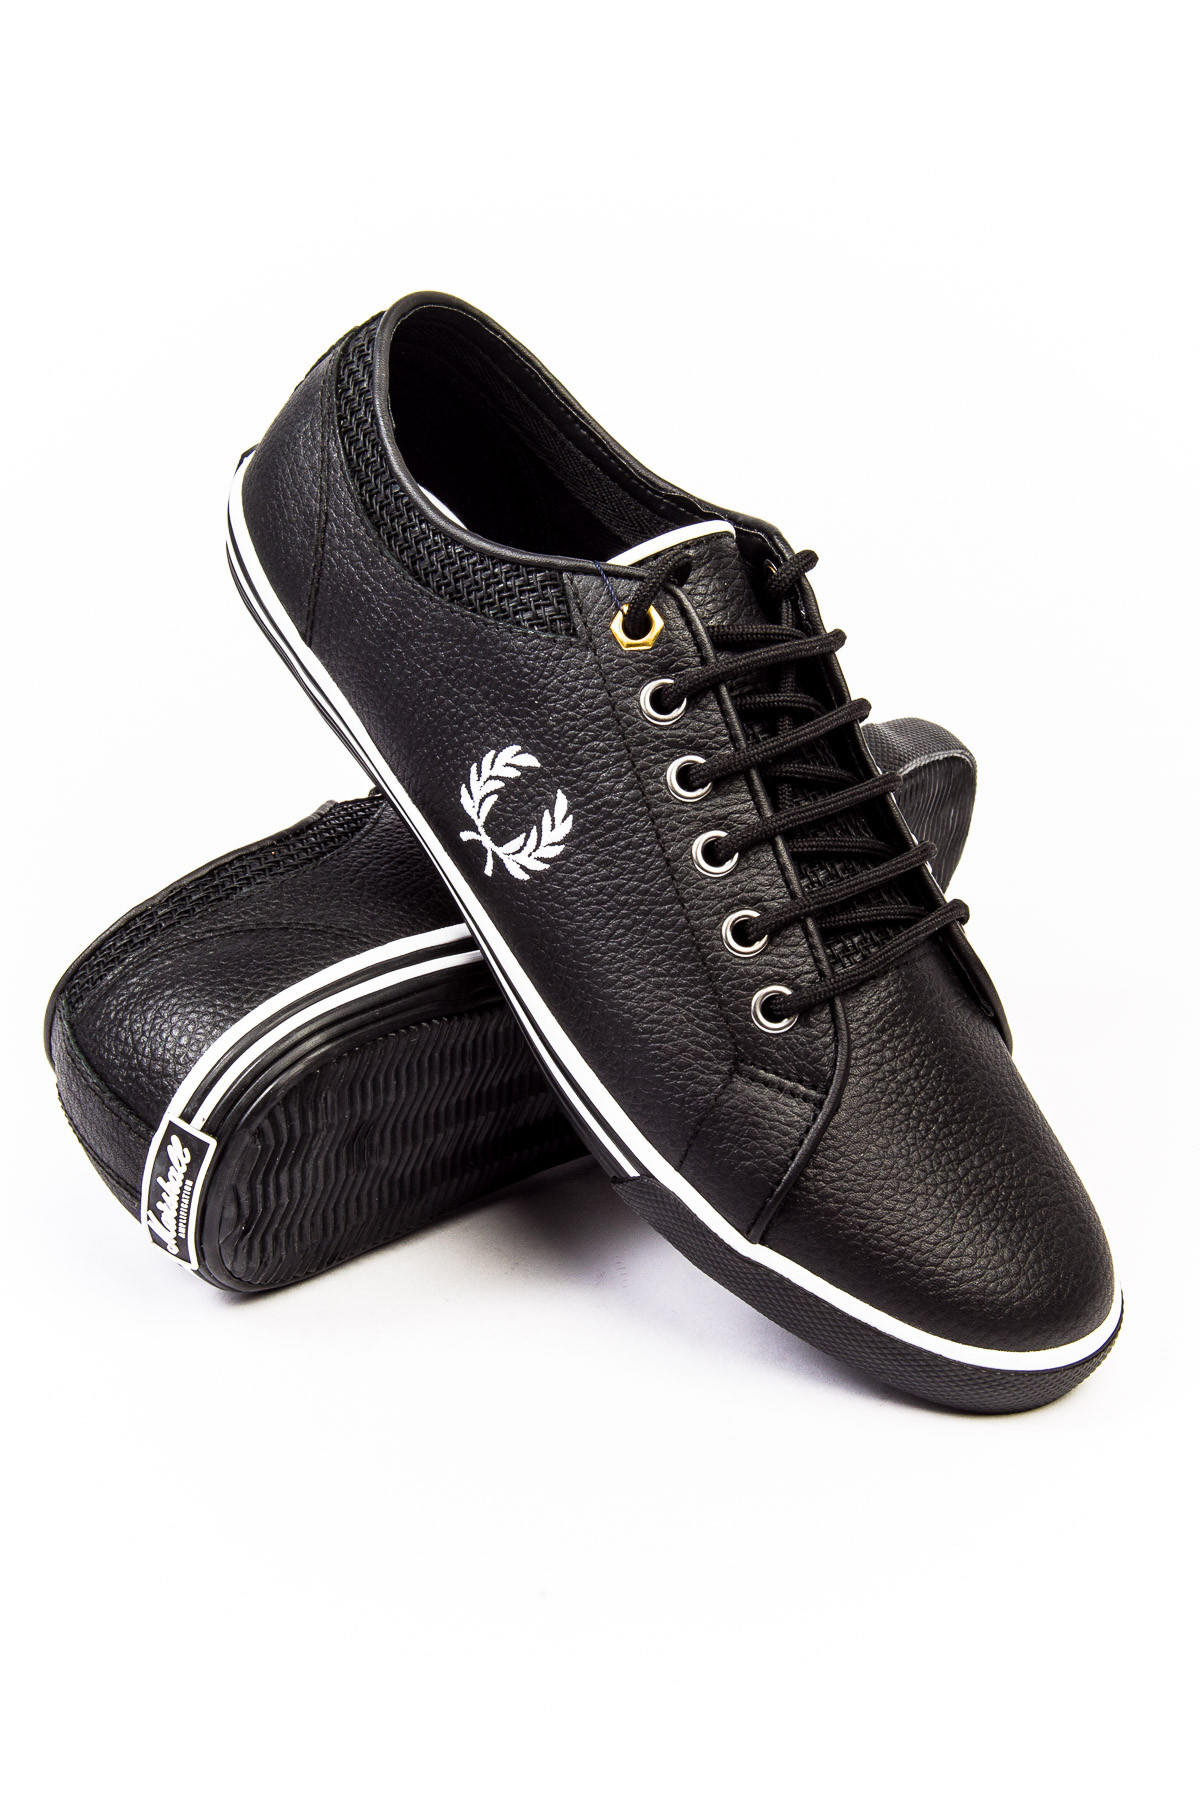 Fred Perry Kingston Leather X Marshall